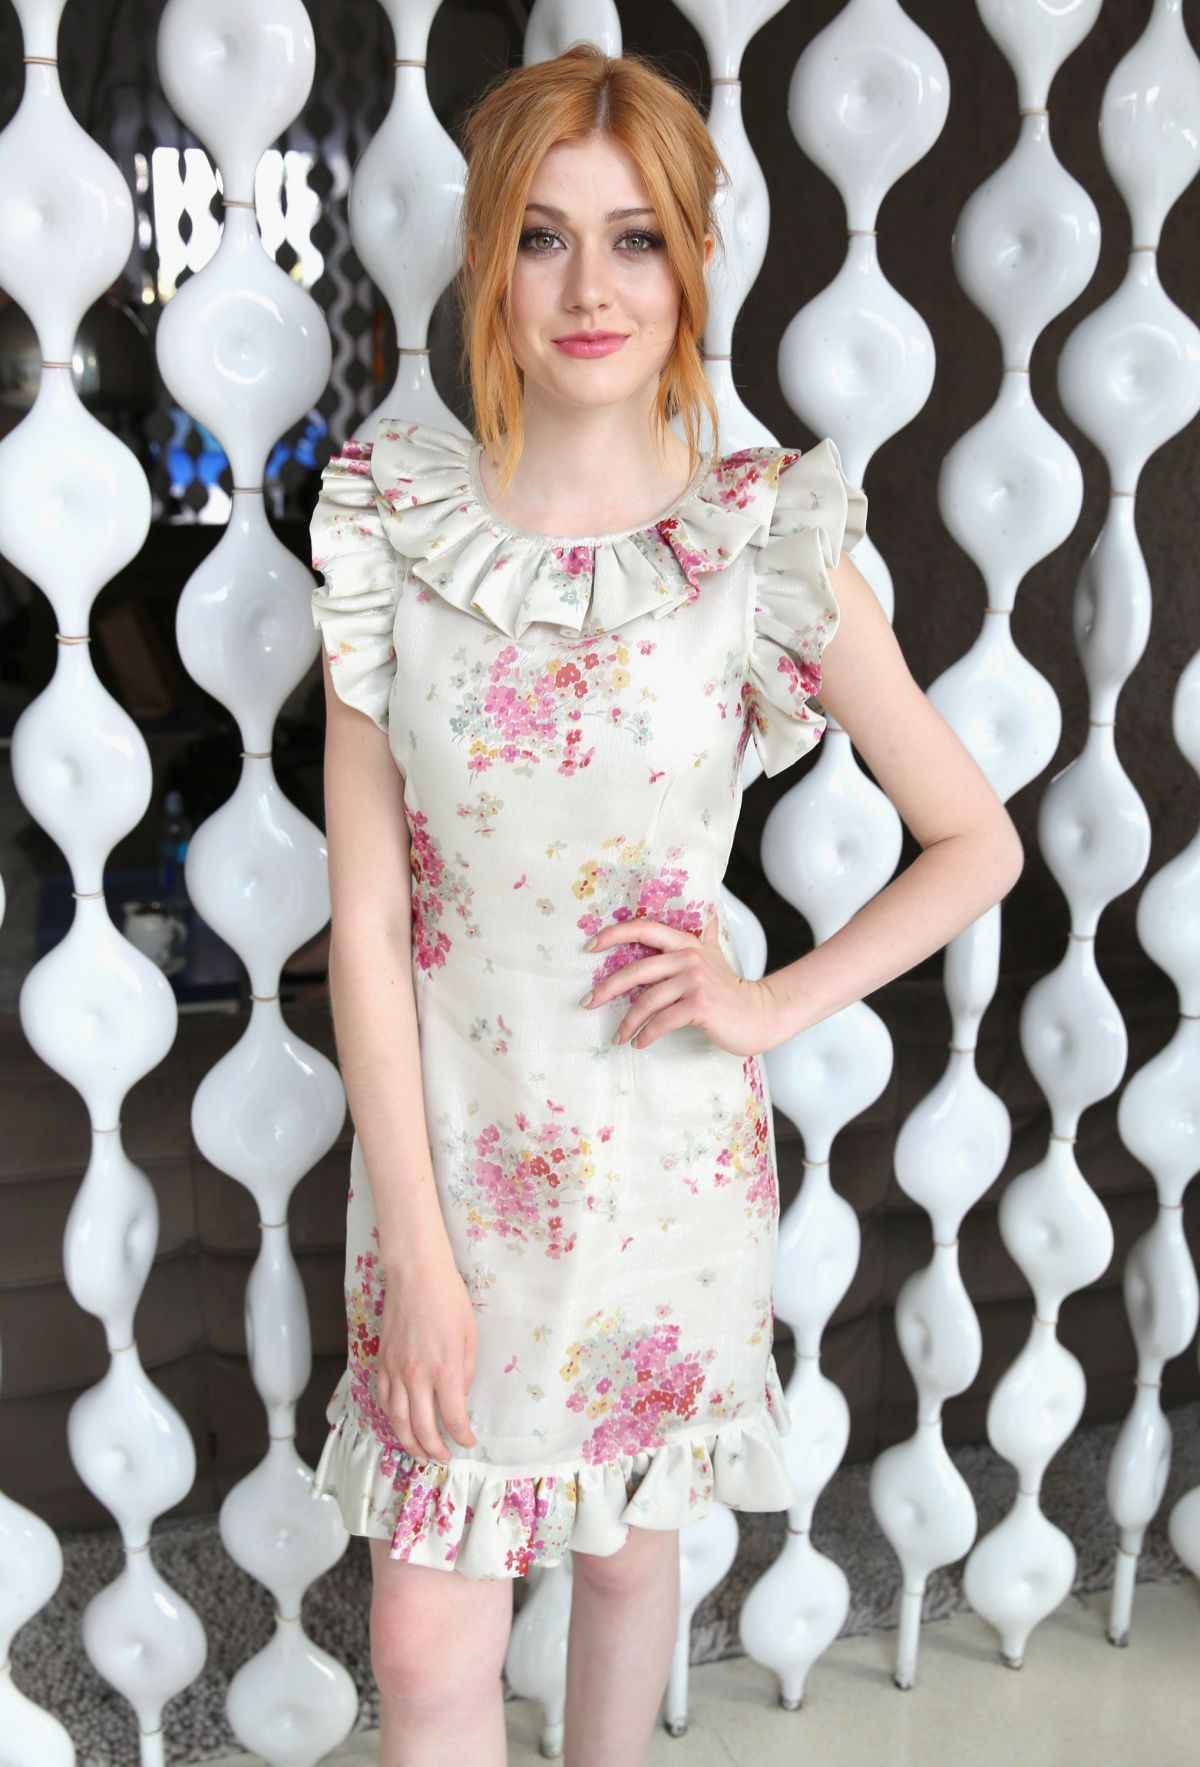 KATHERINE MCNAMARA at Wolk Morais Collection 3 Fashion Show in Los Angeles 05/24/2016